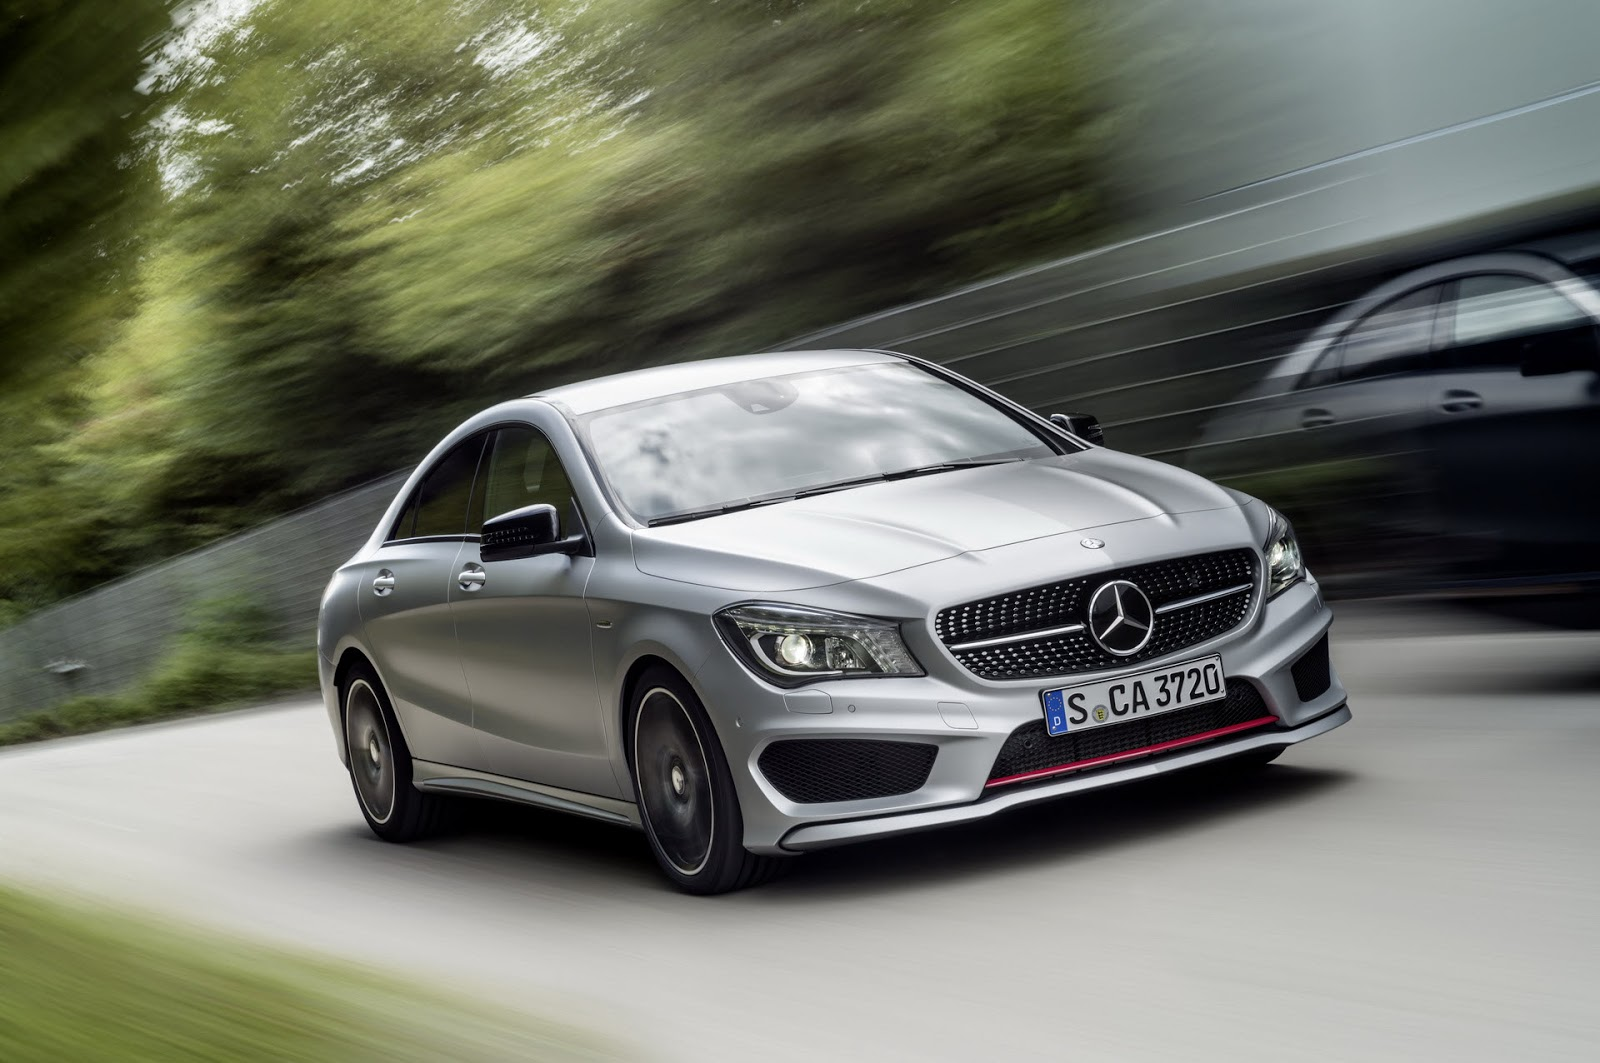 Mercedes benz cla 250 sport cla 45 amg racing series for Sporty mercedes benz